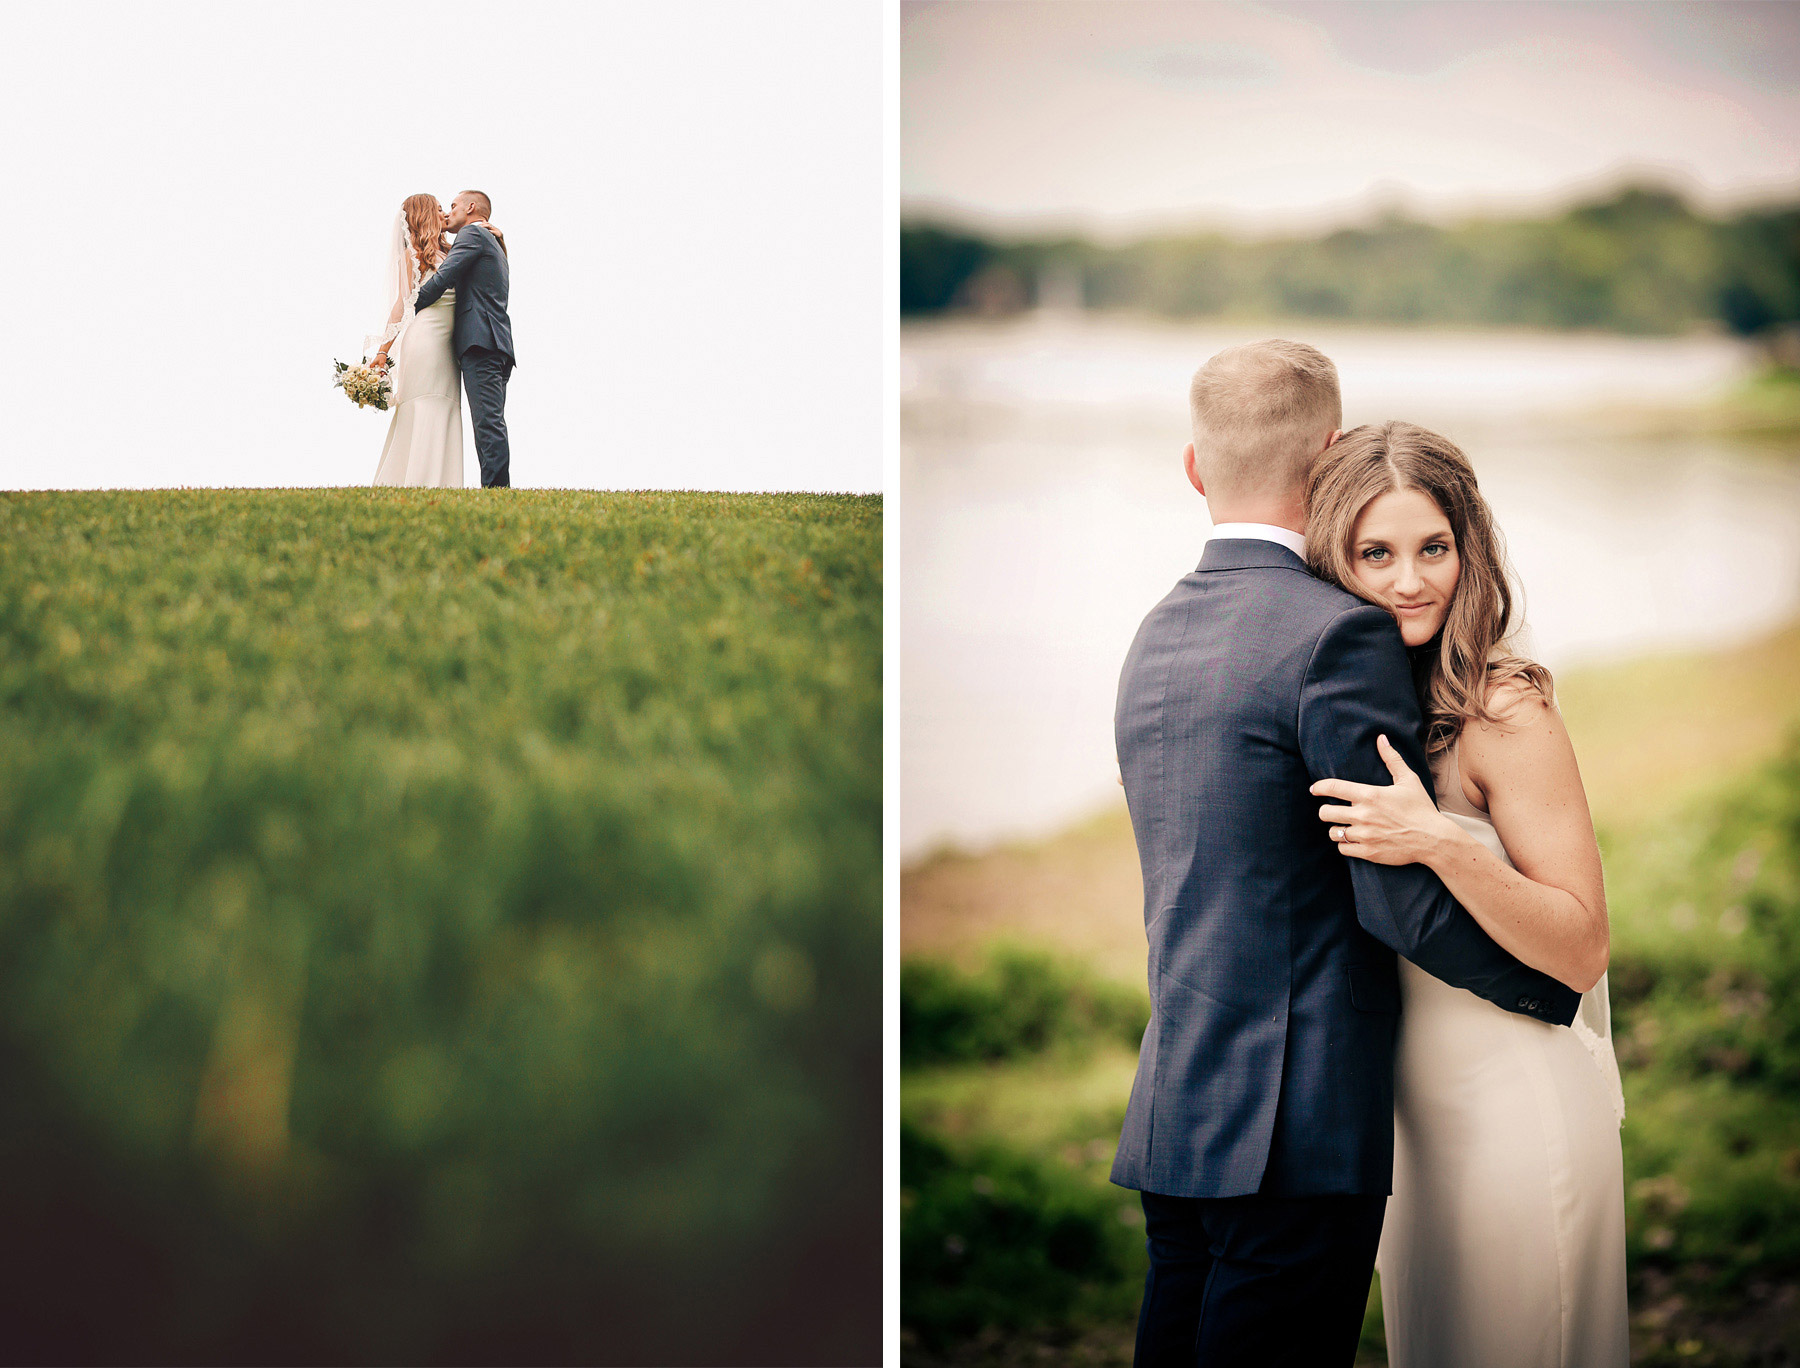 11-Dellwood-Minnesota-Wedding-Photographer-by-Andrew-Vick-Photography-Summer-Country-Club-First-Meeting-Look-Bride-Groom-Embrace-Kiss-Vintage-Sarah-and-Landon.jpg